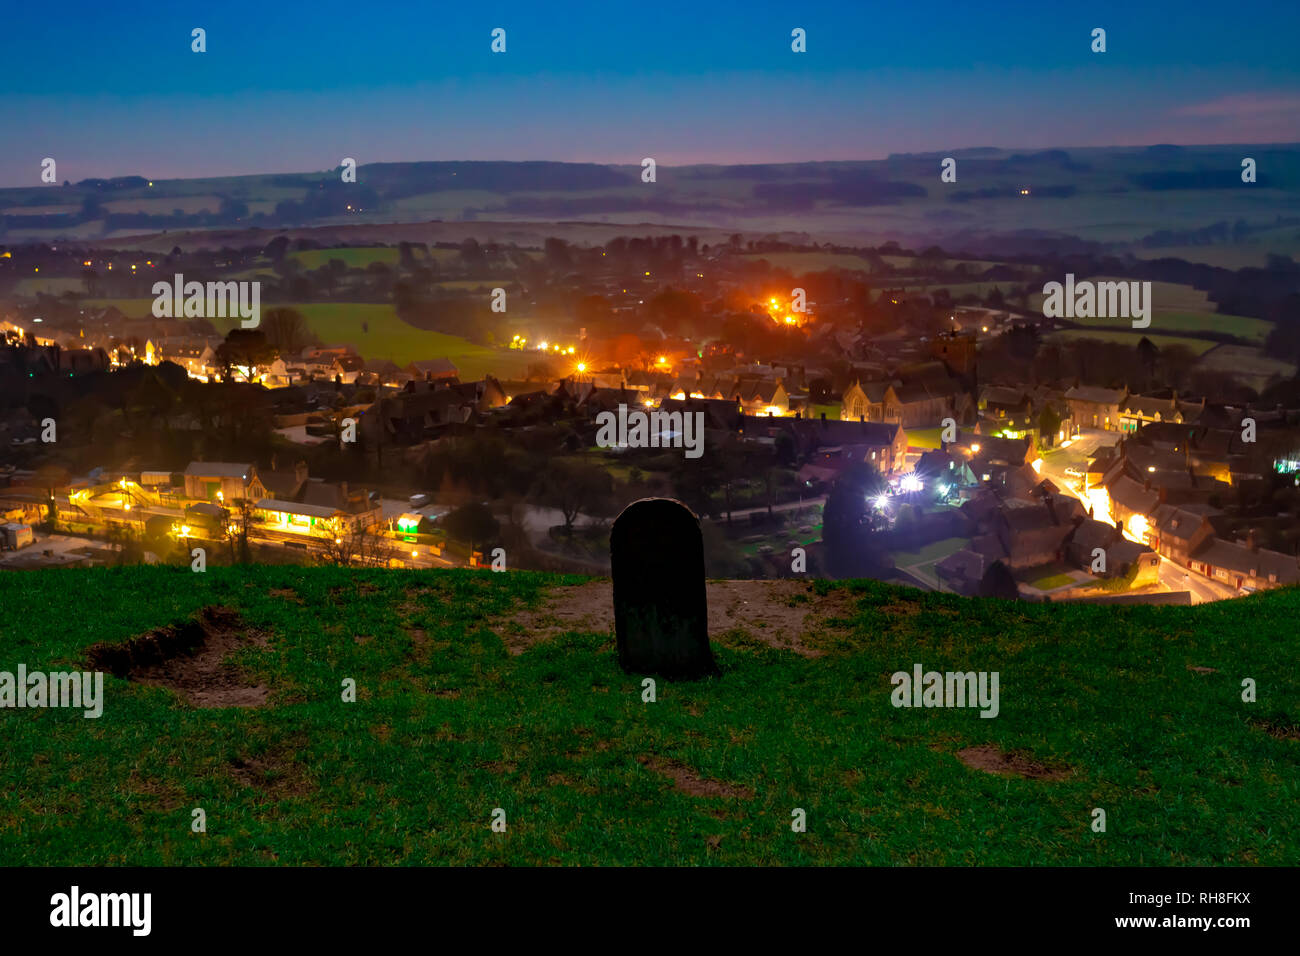 Nightime photograph overlooking Corfe village from nearby hilltop with waymarker stone. Corfe village, Dorset, England - Stock Image